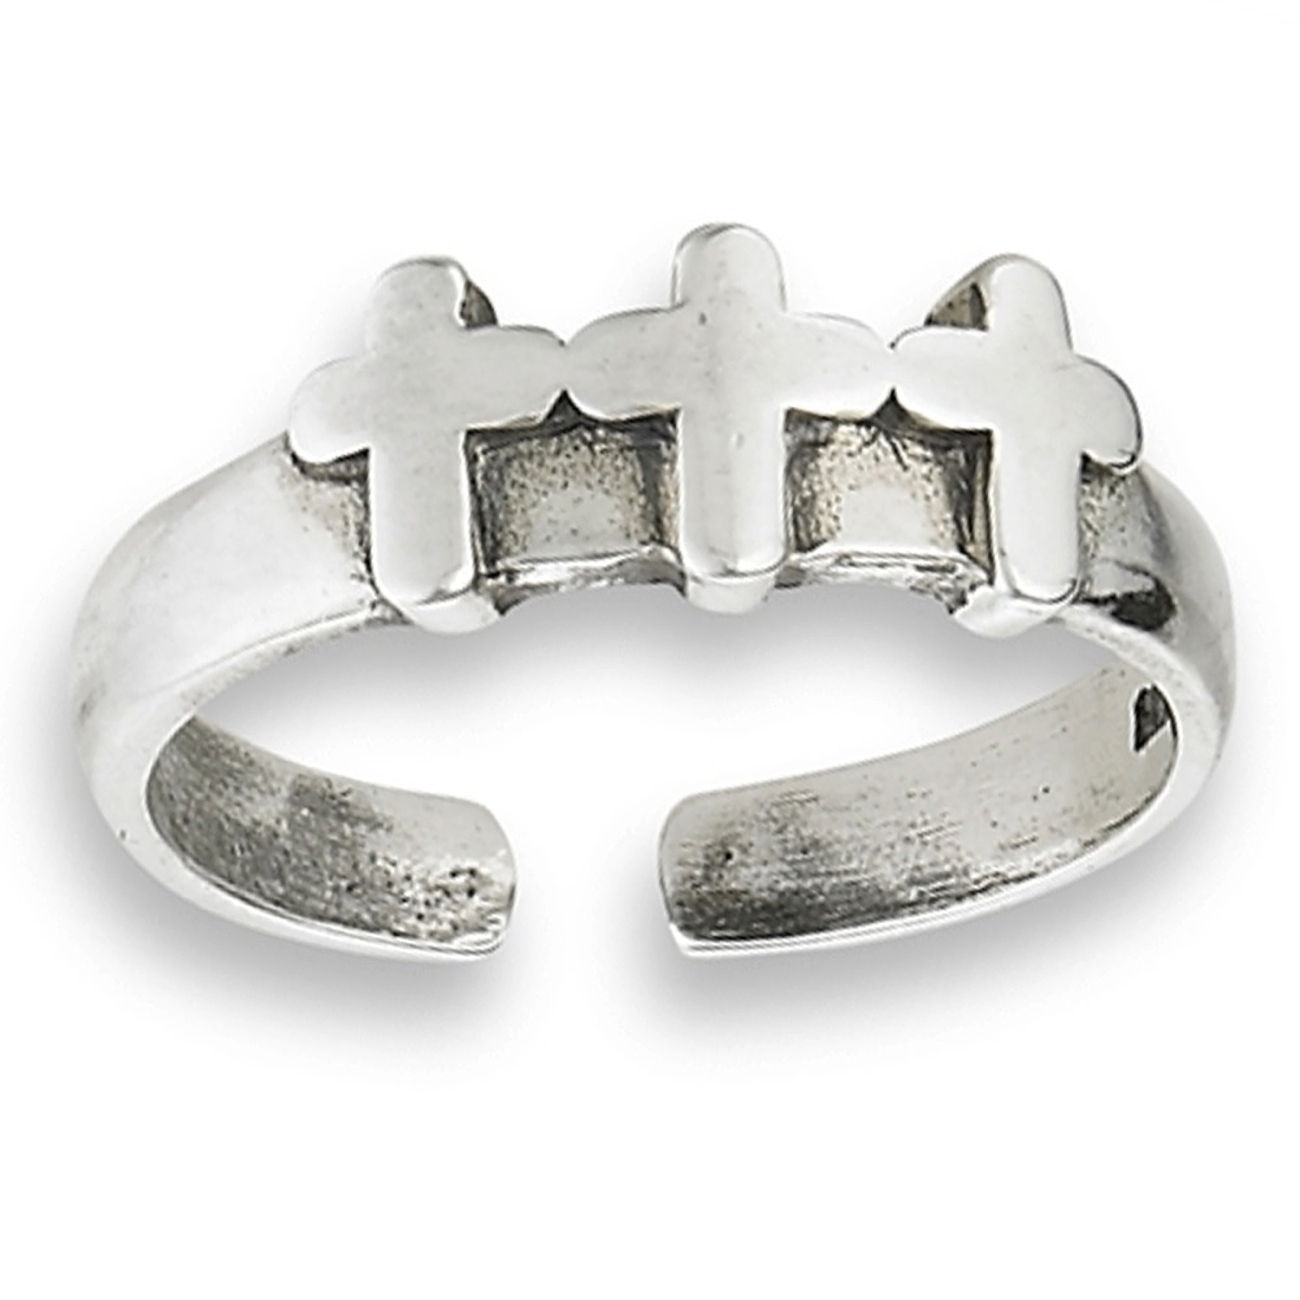 Three Crosses Calvary Adjustable Toe Ring